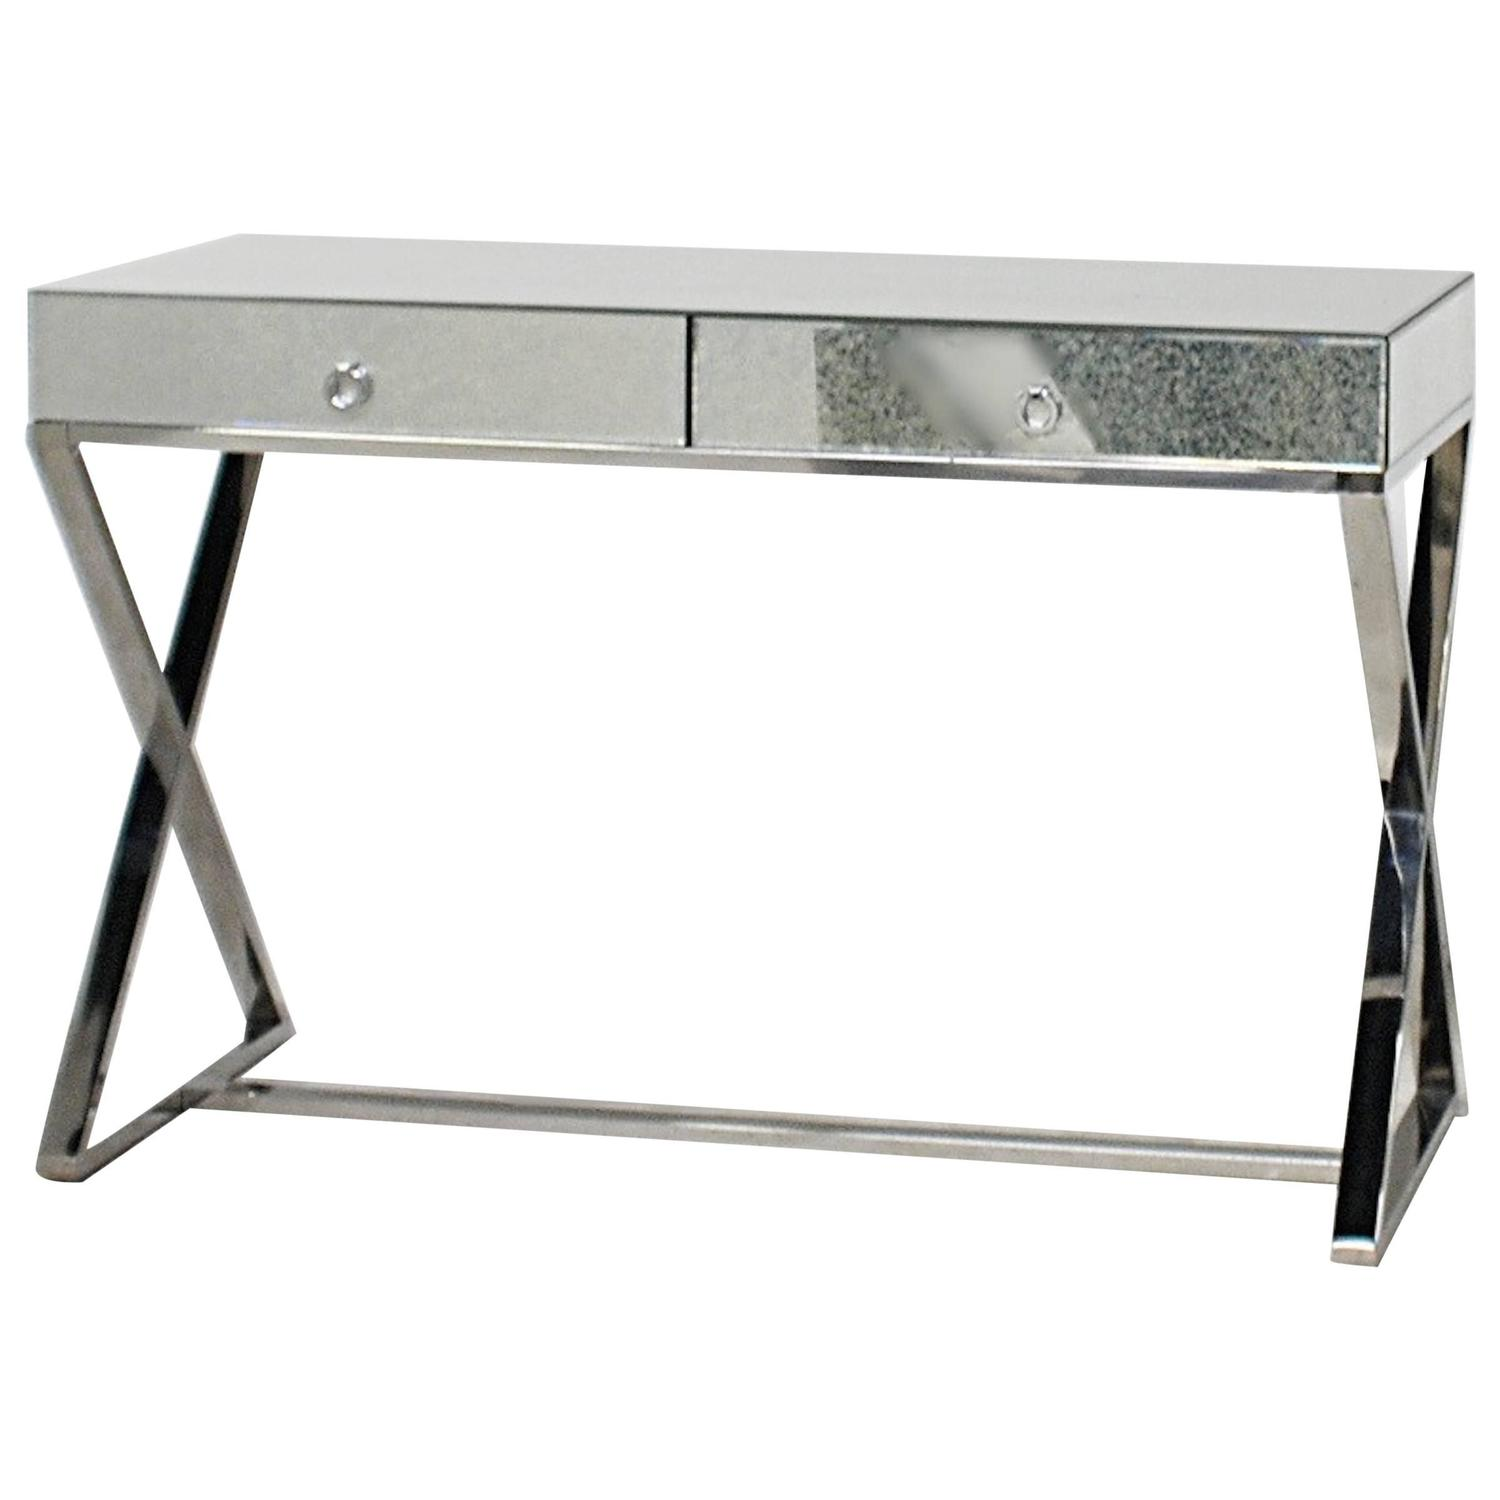 Modern Mirrored And Chrome Desk Or Vanity At 1stdibs